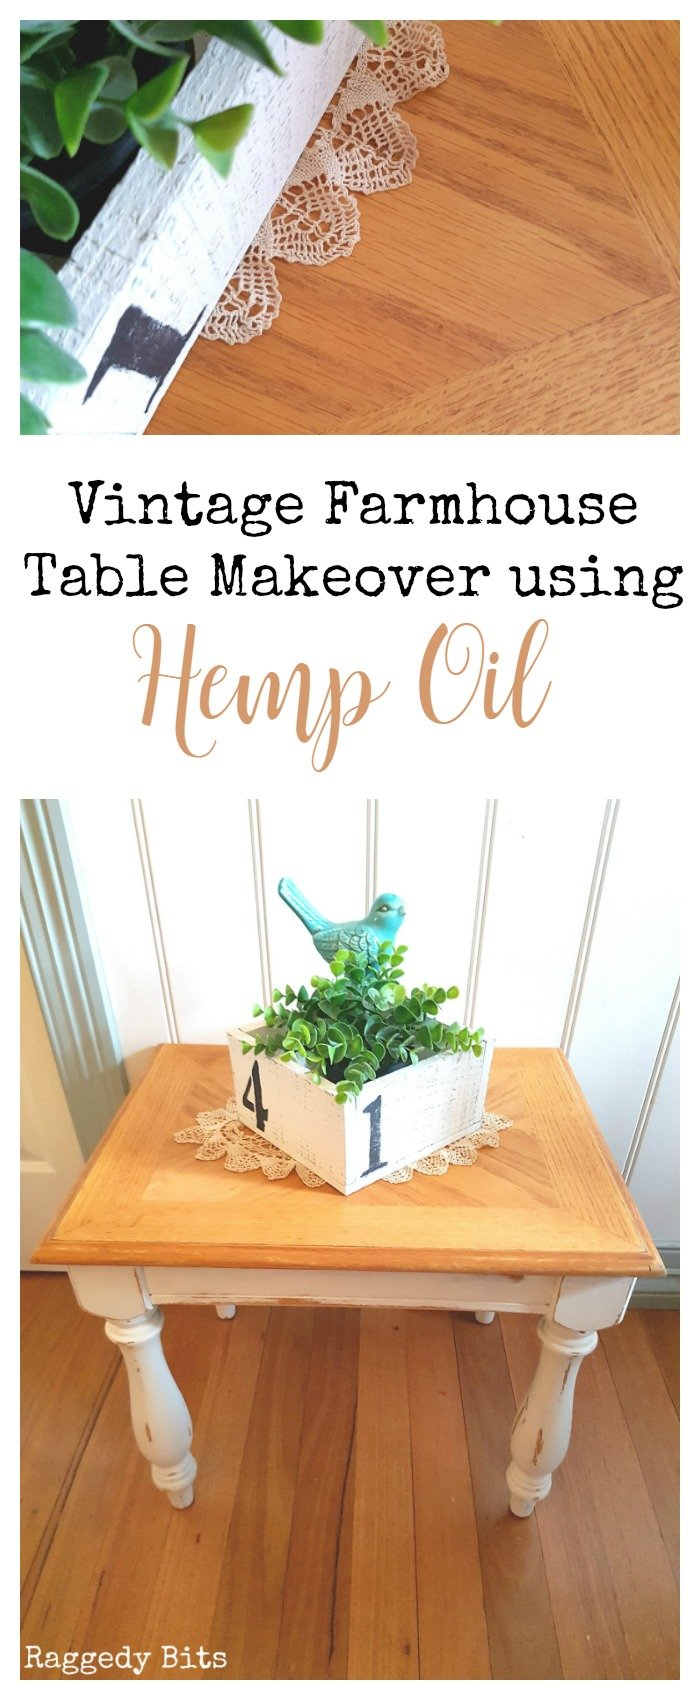 Turn an old side table into a Vintage Farmhouse Table Makeover using Hemp Oil | Full Tutorial | www.raggedy-bits.com